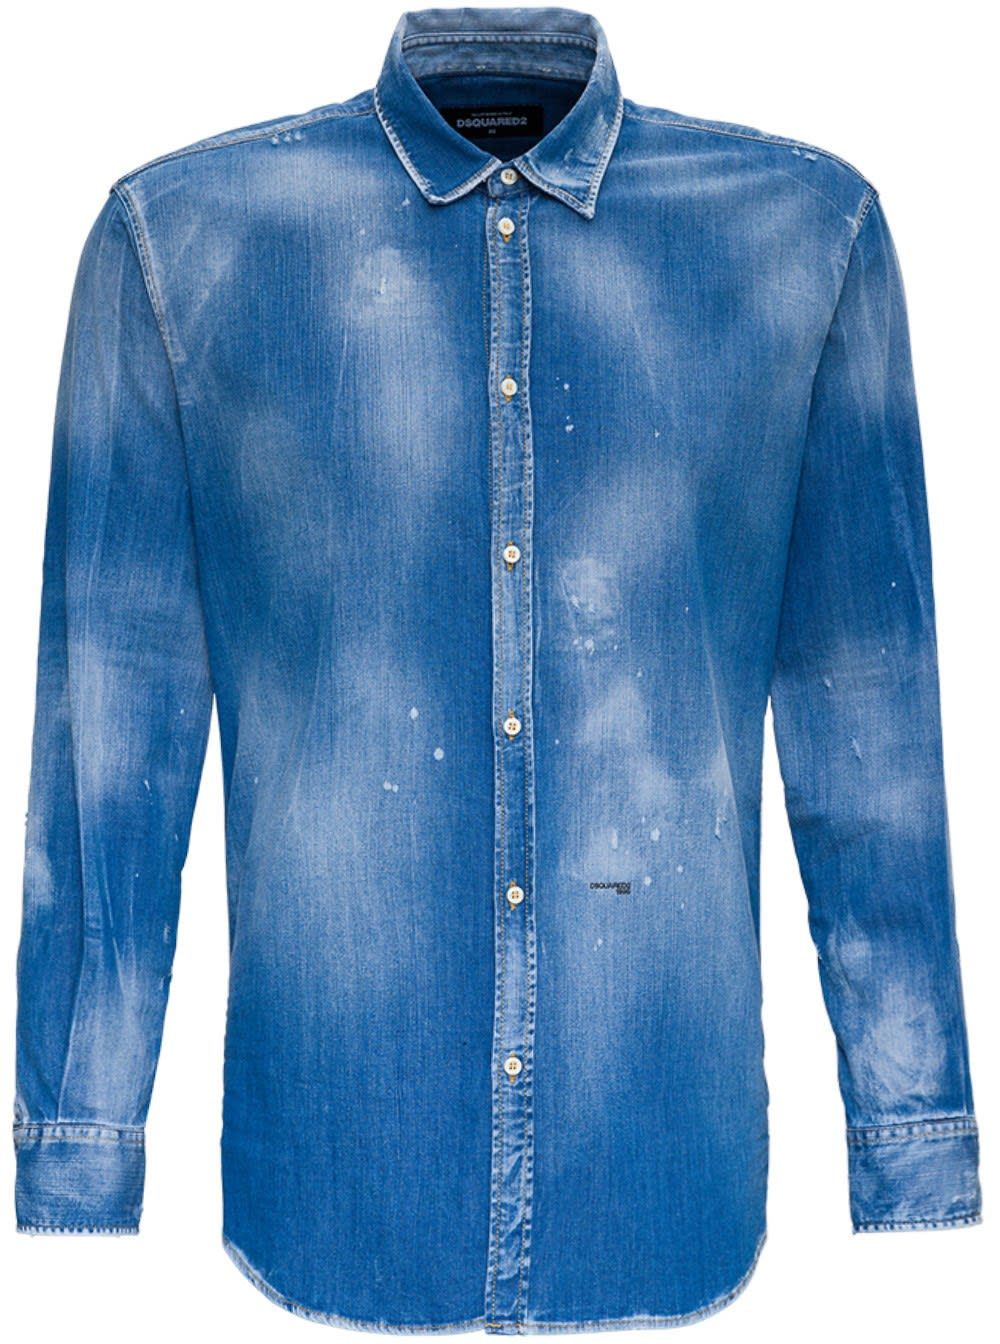 Dsquared2 Denim Shirt With Paint Splatters Detail In Blu